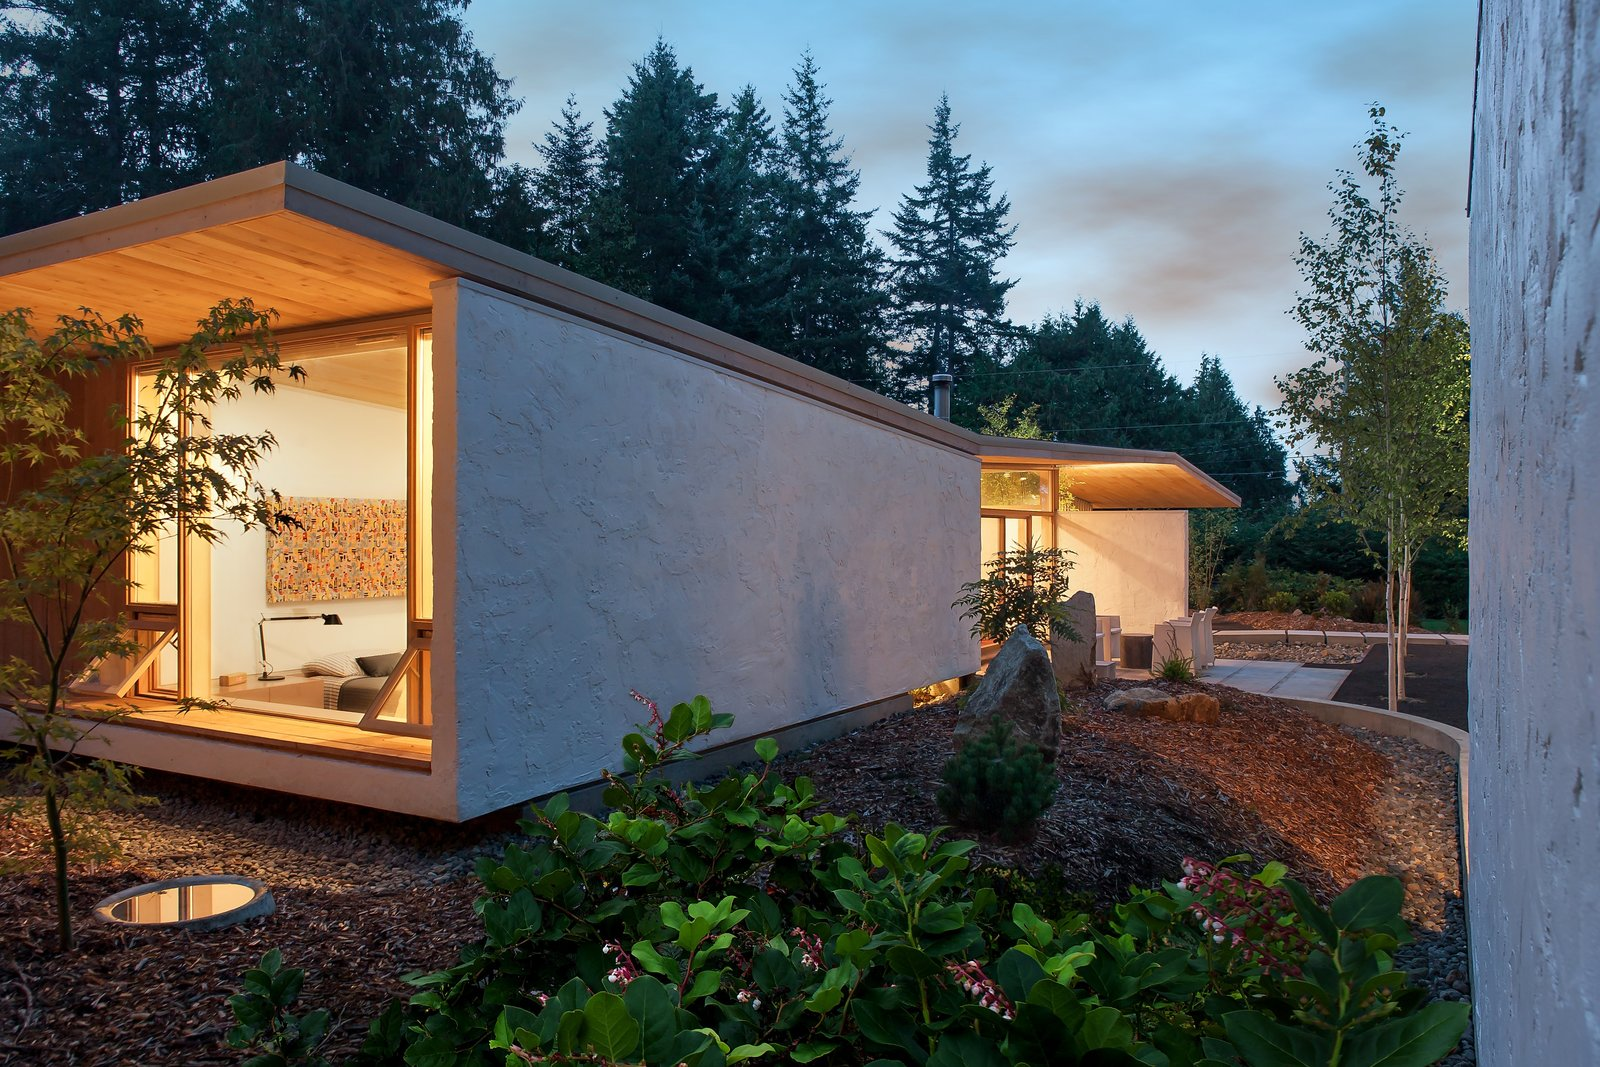 """""""[The house] avoids the mass or heaviness of too much timber construction, so with a few hidden steel beams, it seems to float and hover over the site in a delicate way,"""" Jones says. Salal, a native plant to the Pacific Northwest, and fern act as the site's groundcover."""